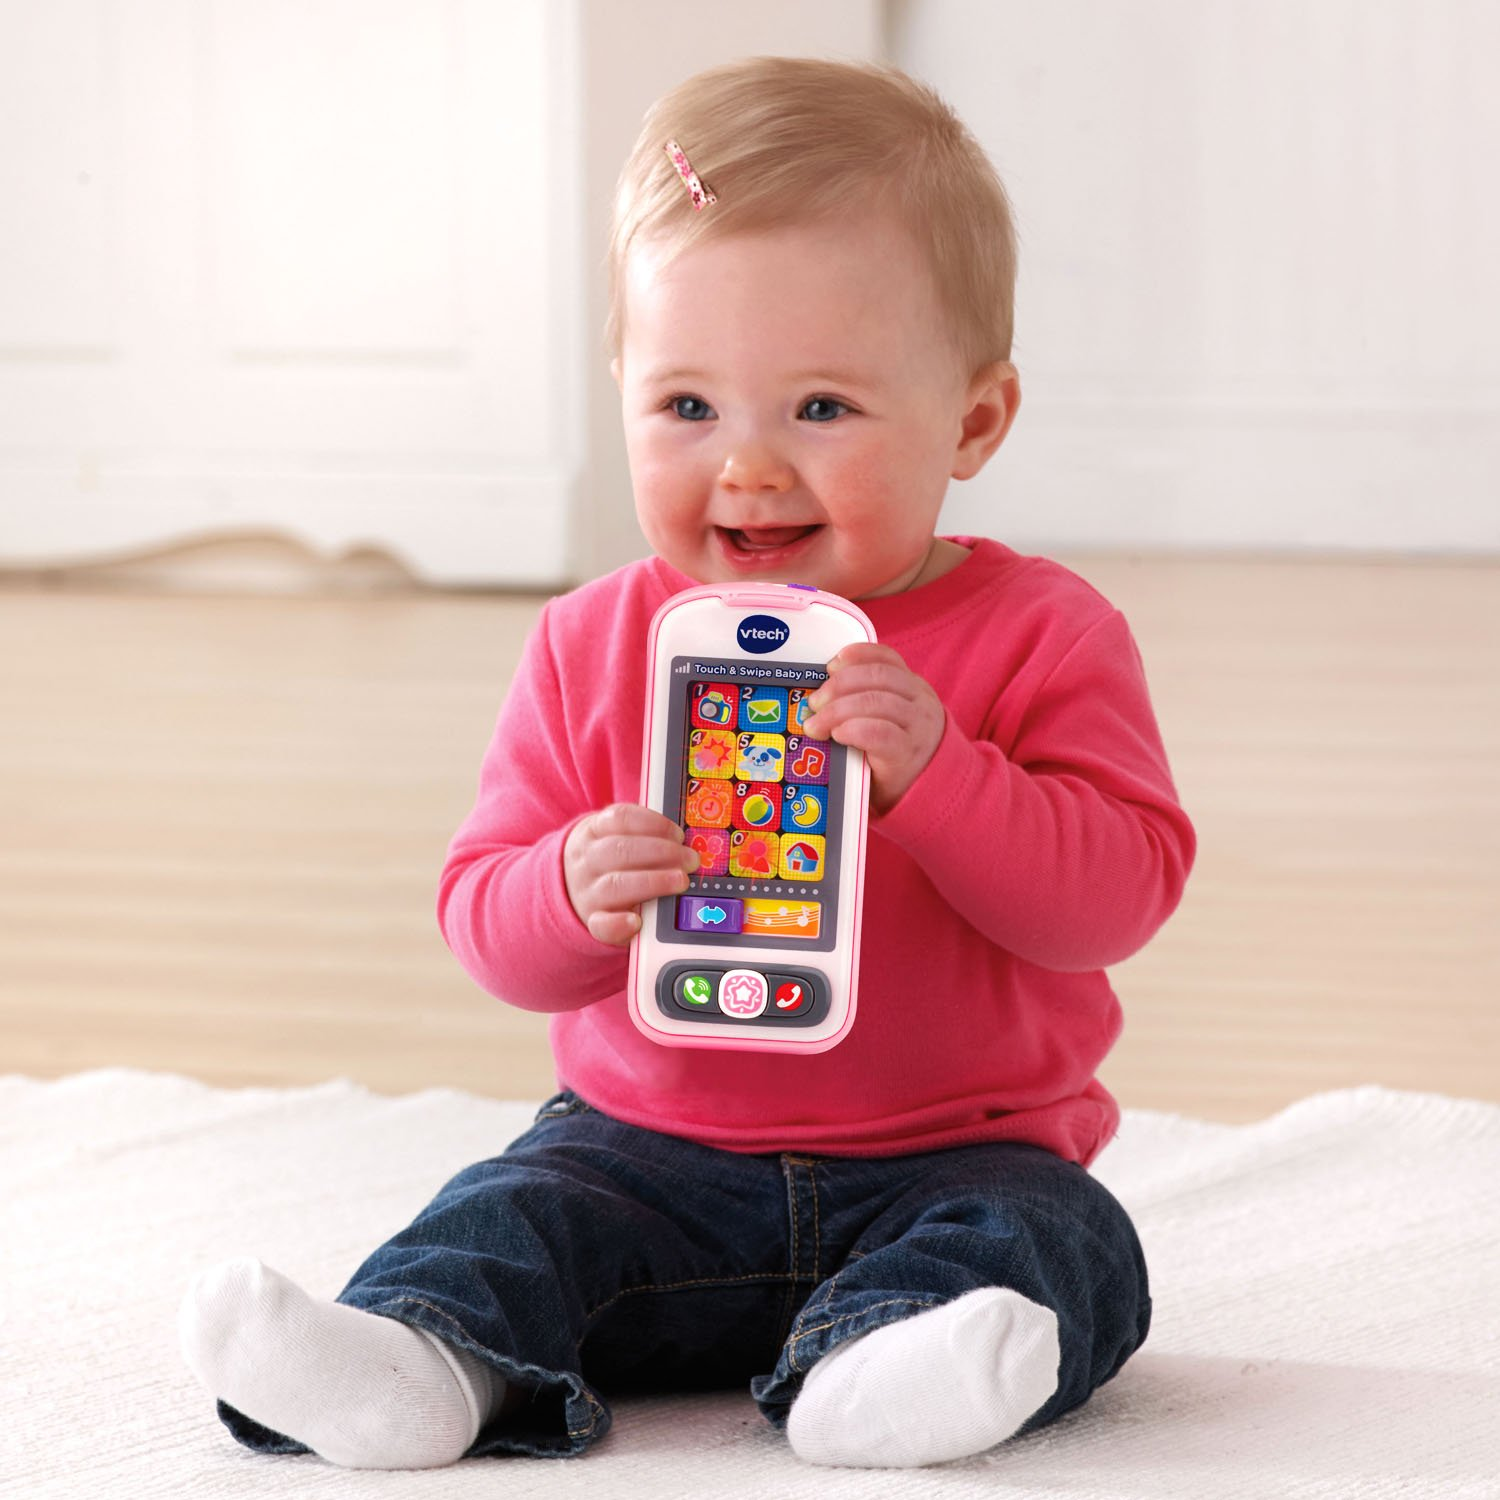 VTech Touch and Swipe Baby Phone, Pink by VTech (Image #5)